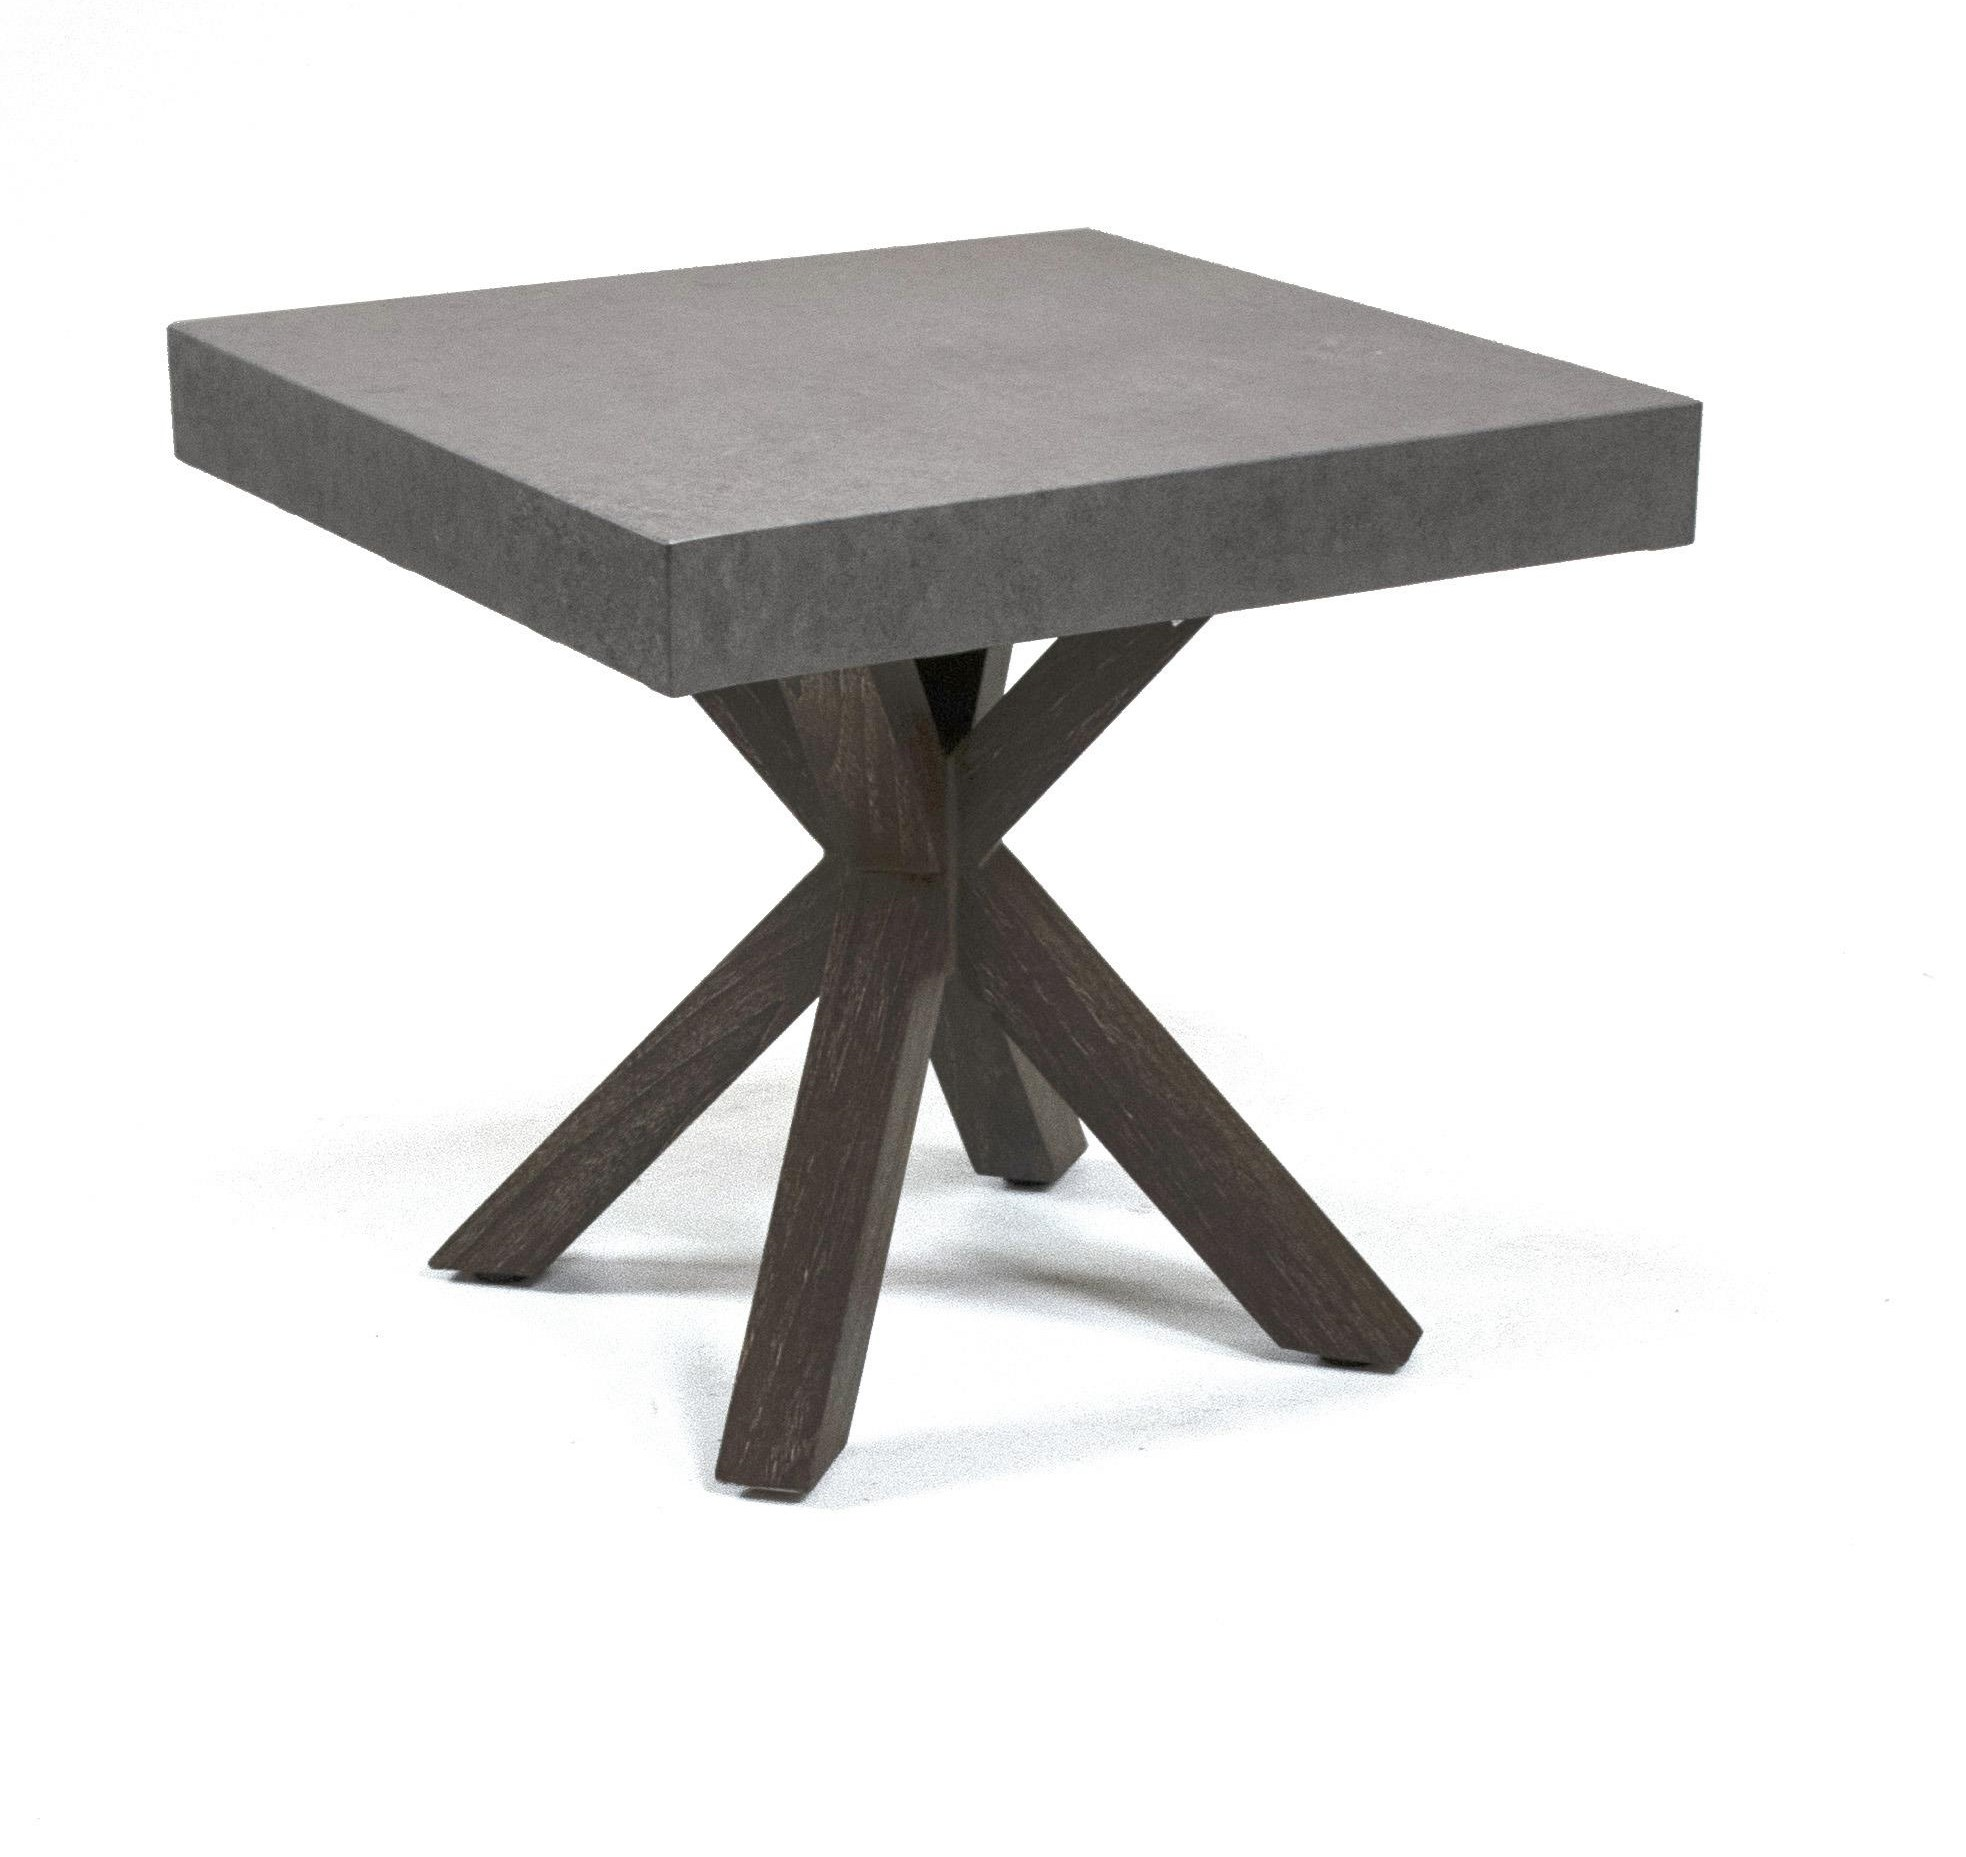 Patio Renaissance 23 inch End Table Top by Patio Renaissance at Johnny Janosik